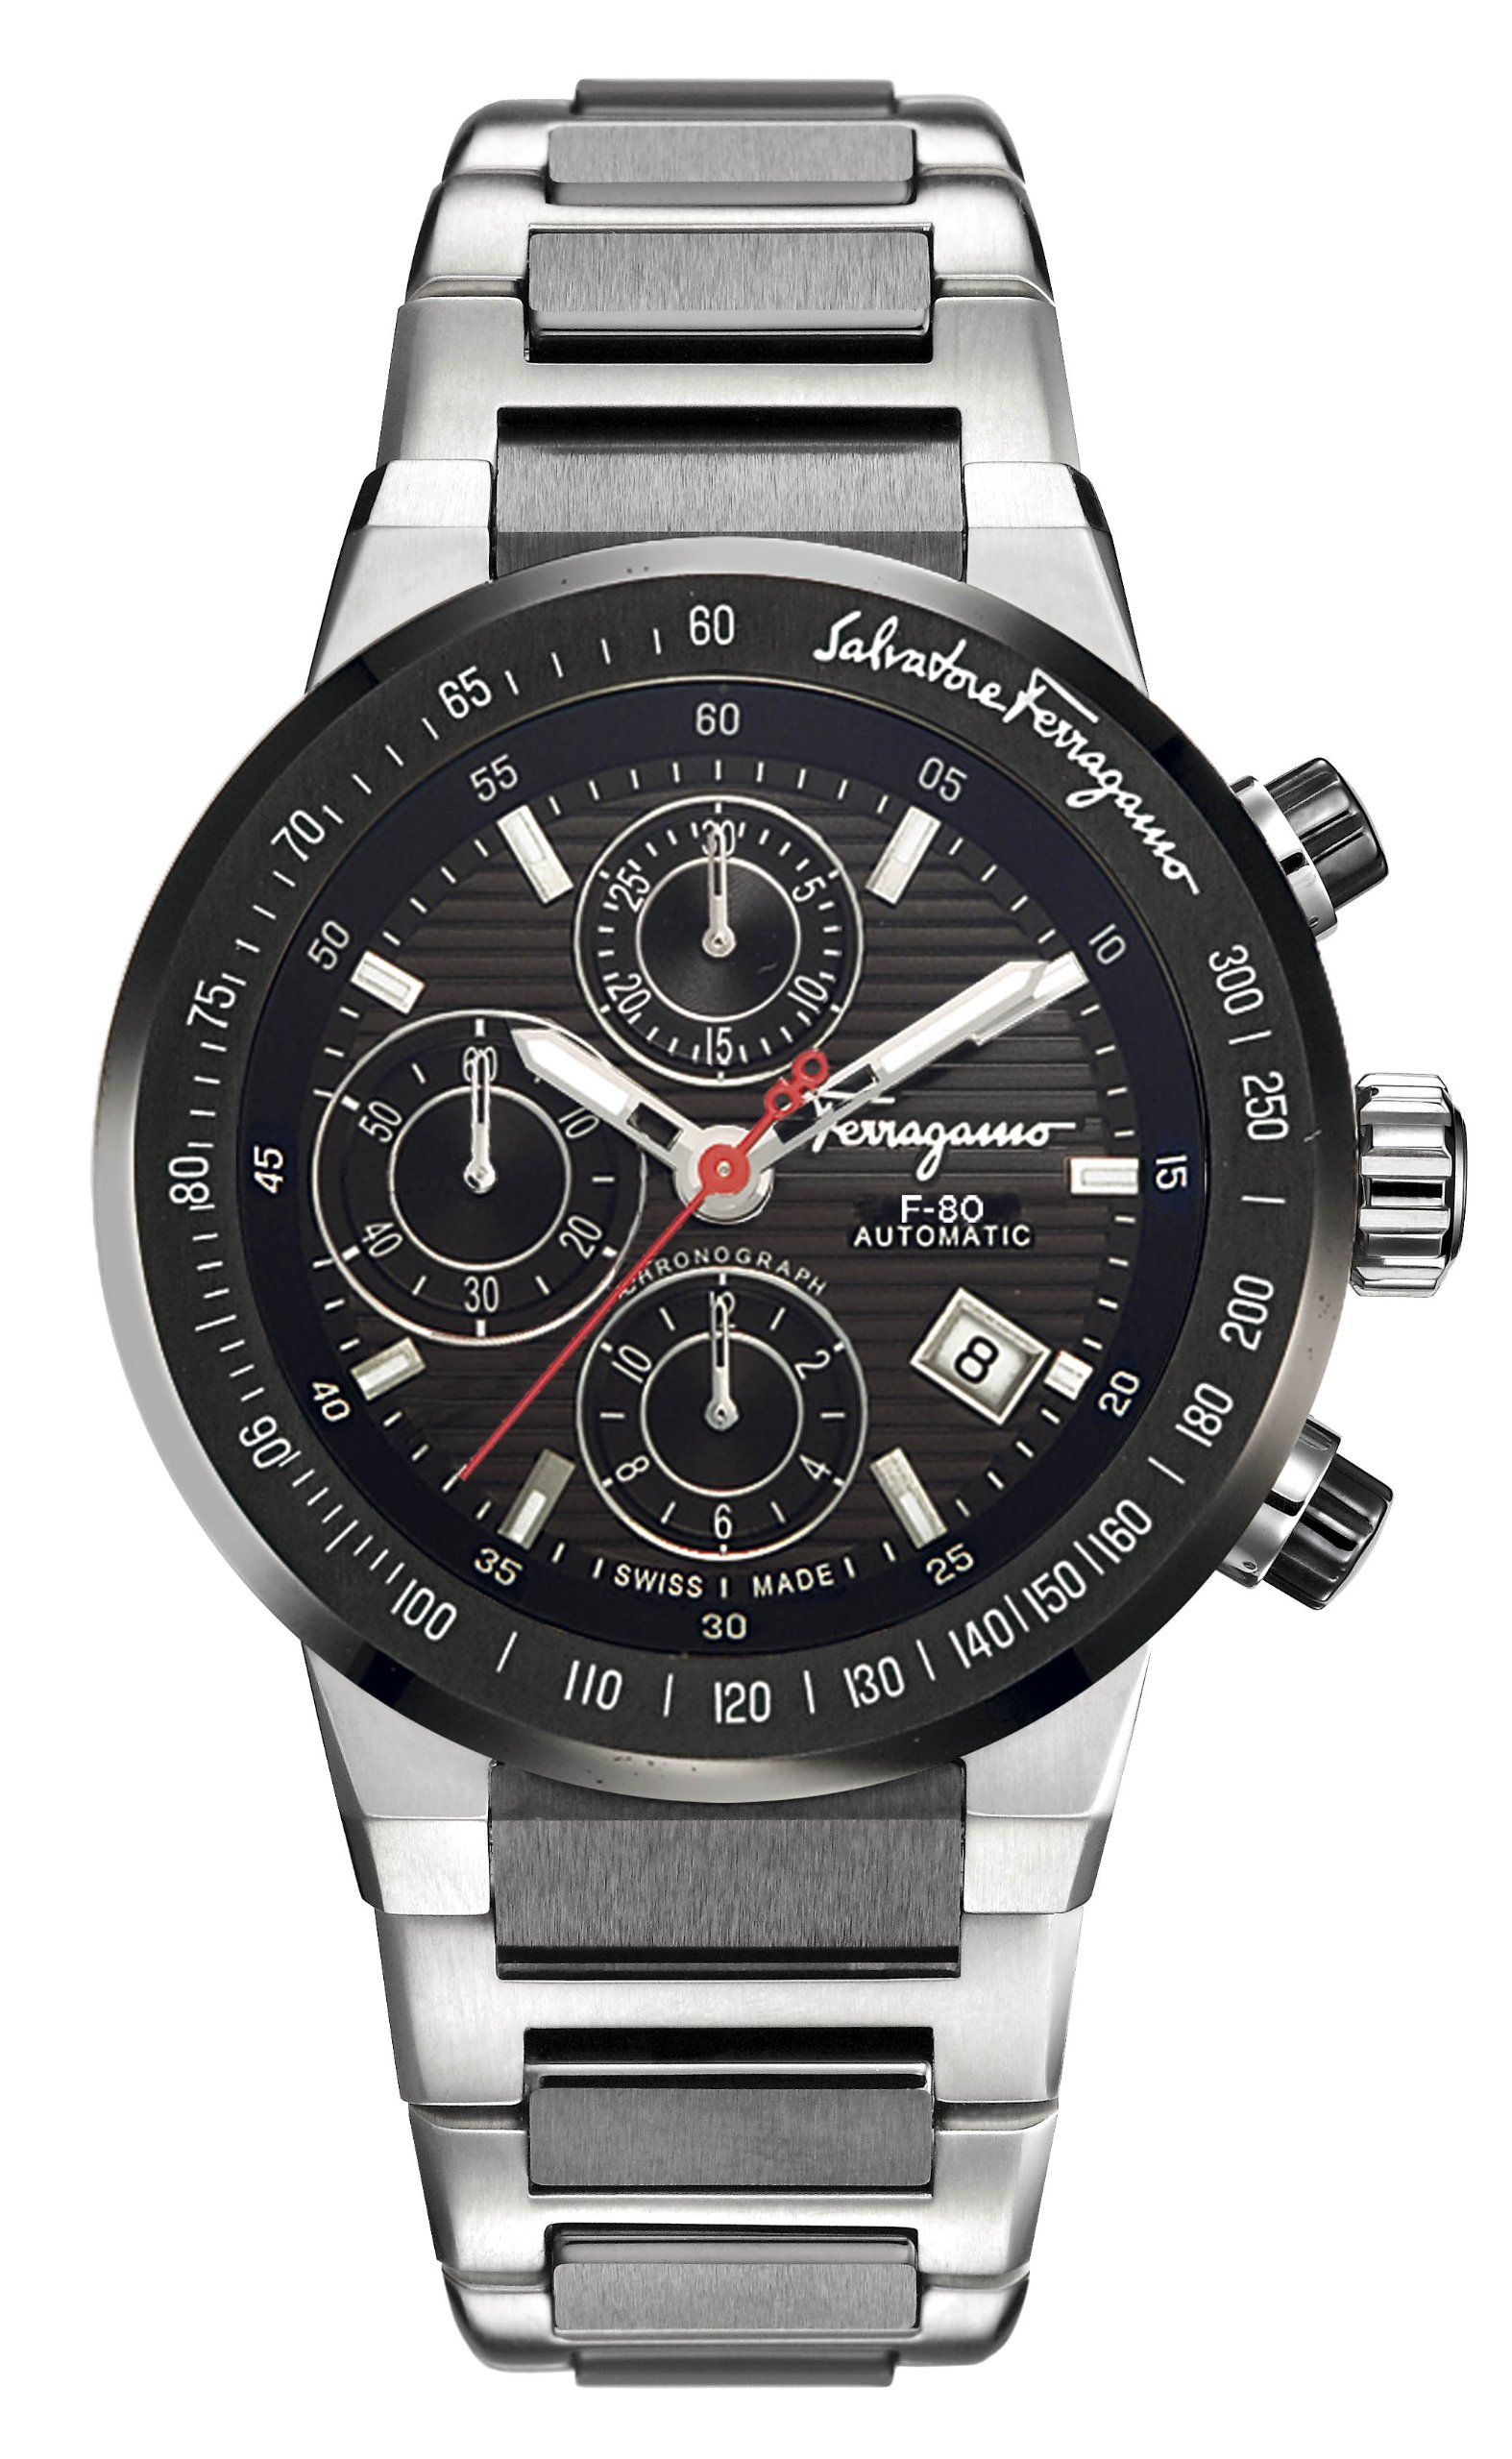 tachymeter t measure practice to and scale watches omega get math chronograph a way more useful speed reading use little of the easier they tachymeters so with both distance let blog how using don are in